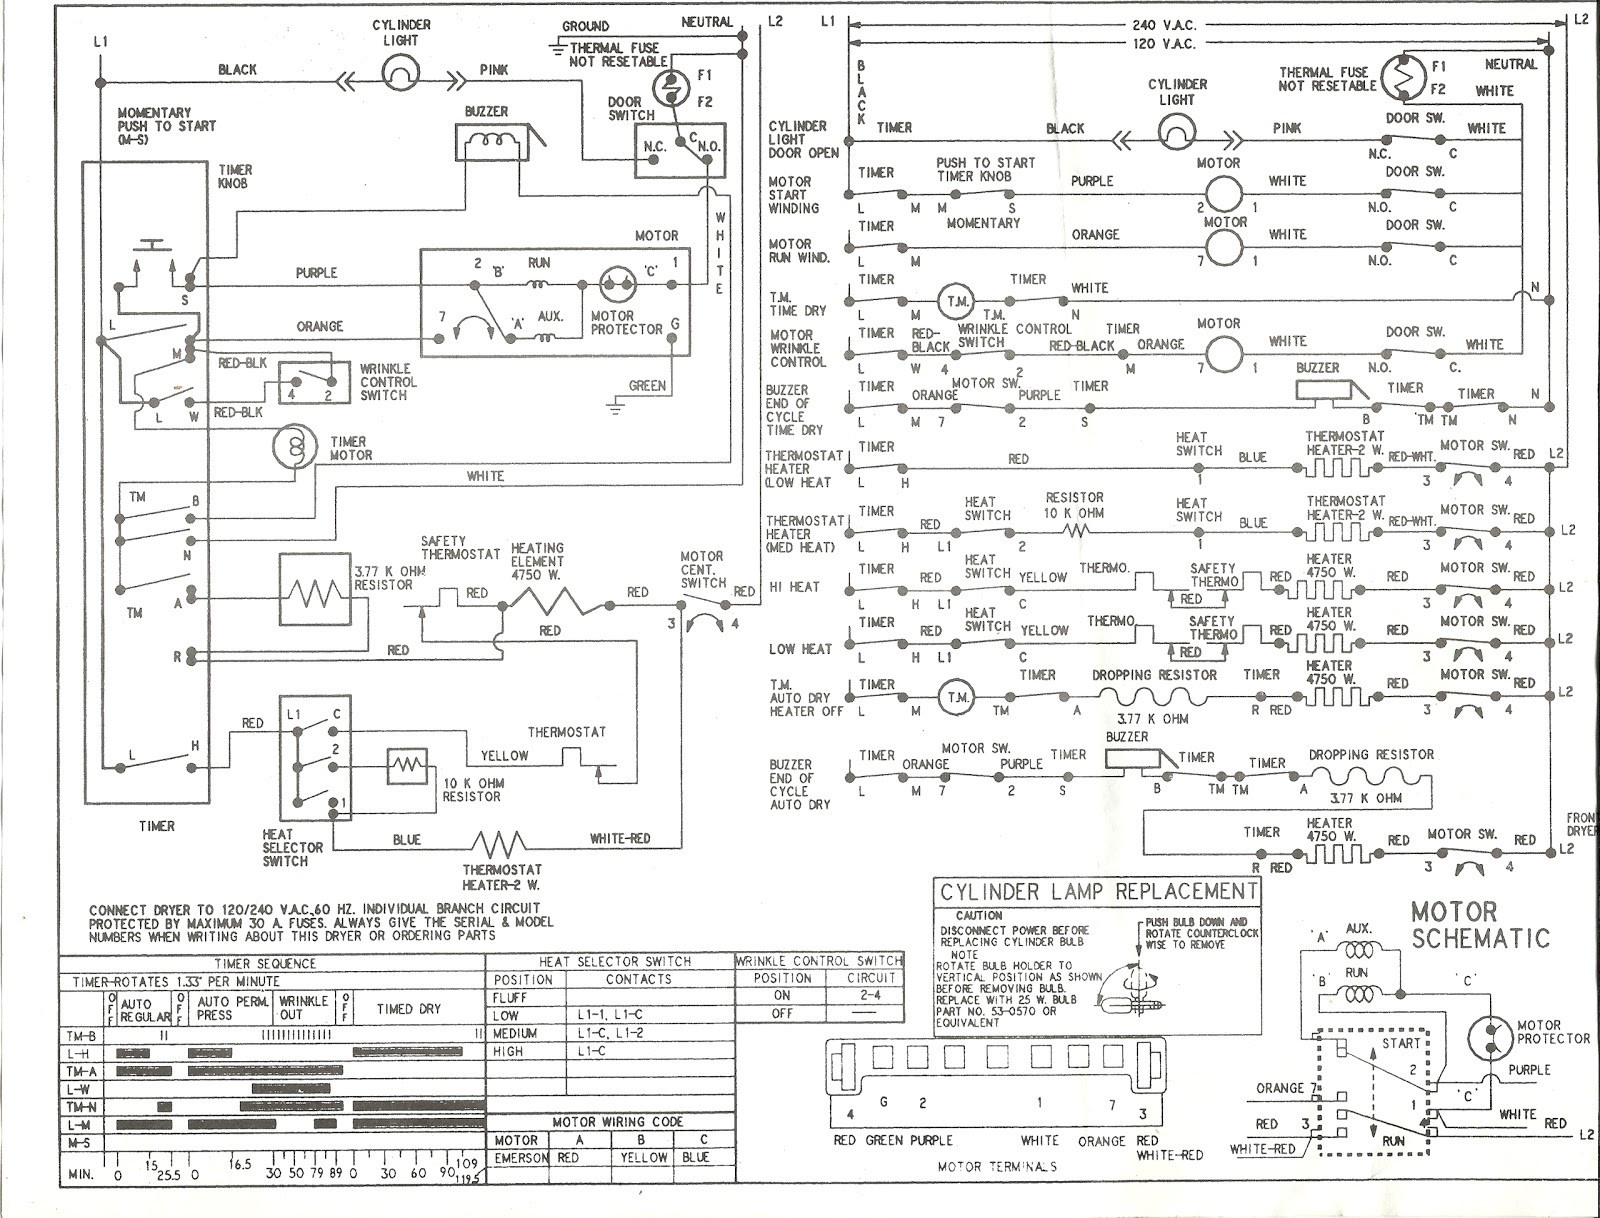 kenmore dryer wiring diagram Collection-Scan0001 Wiring Diagrams For Kenmore Dryer 0 10-p